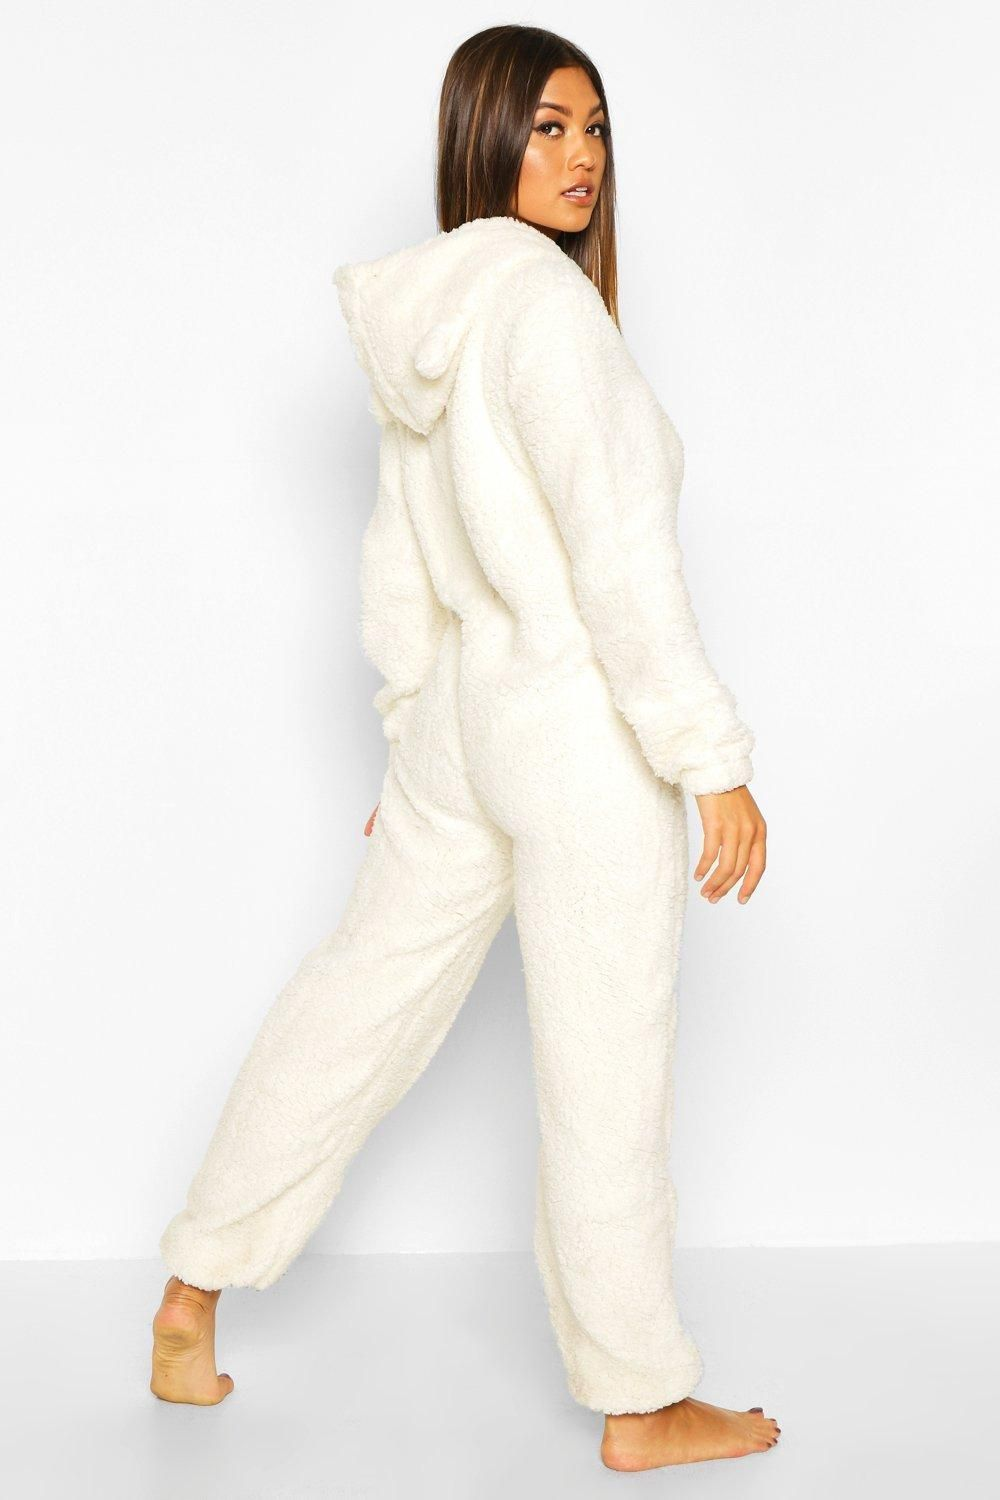 Super Soft Fleece Onesie  boohoo  Onesie pajamas women, Pajamas